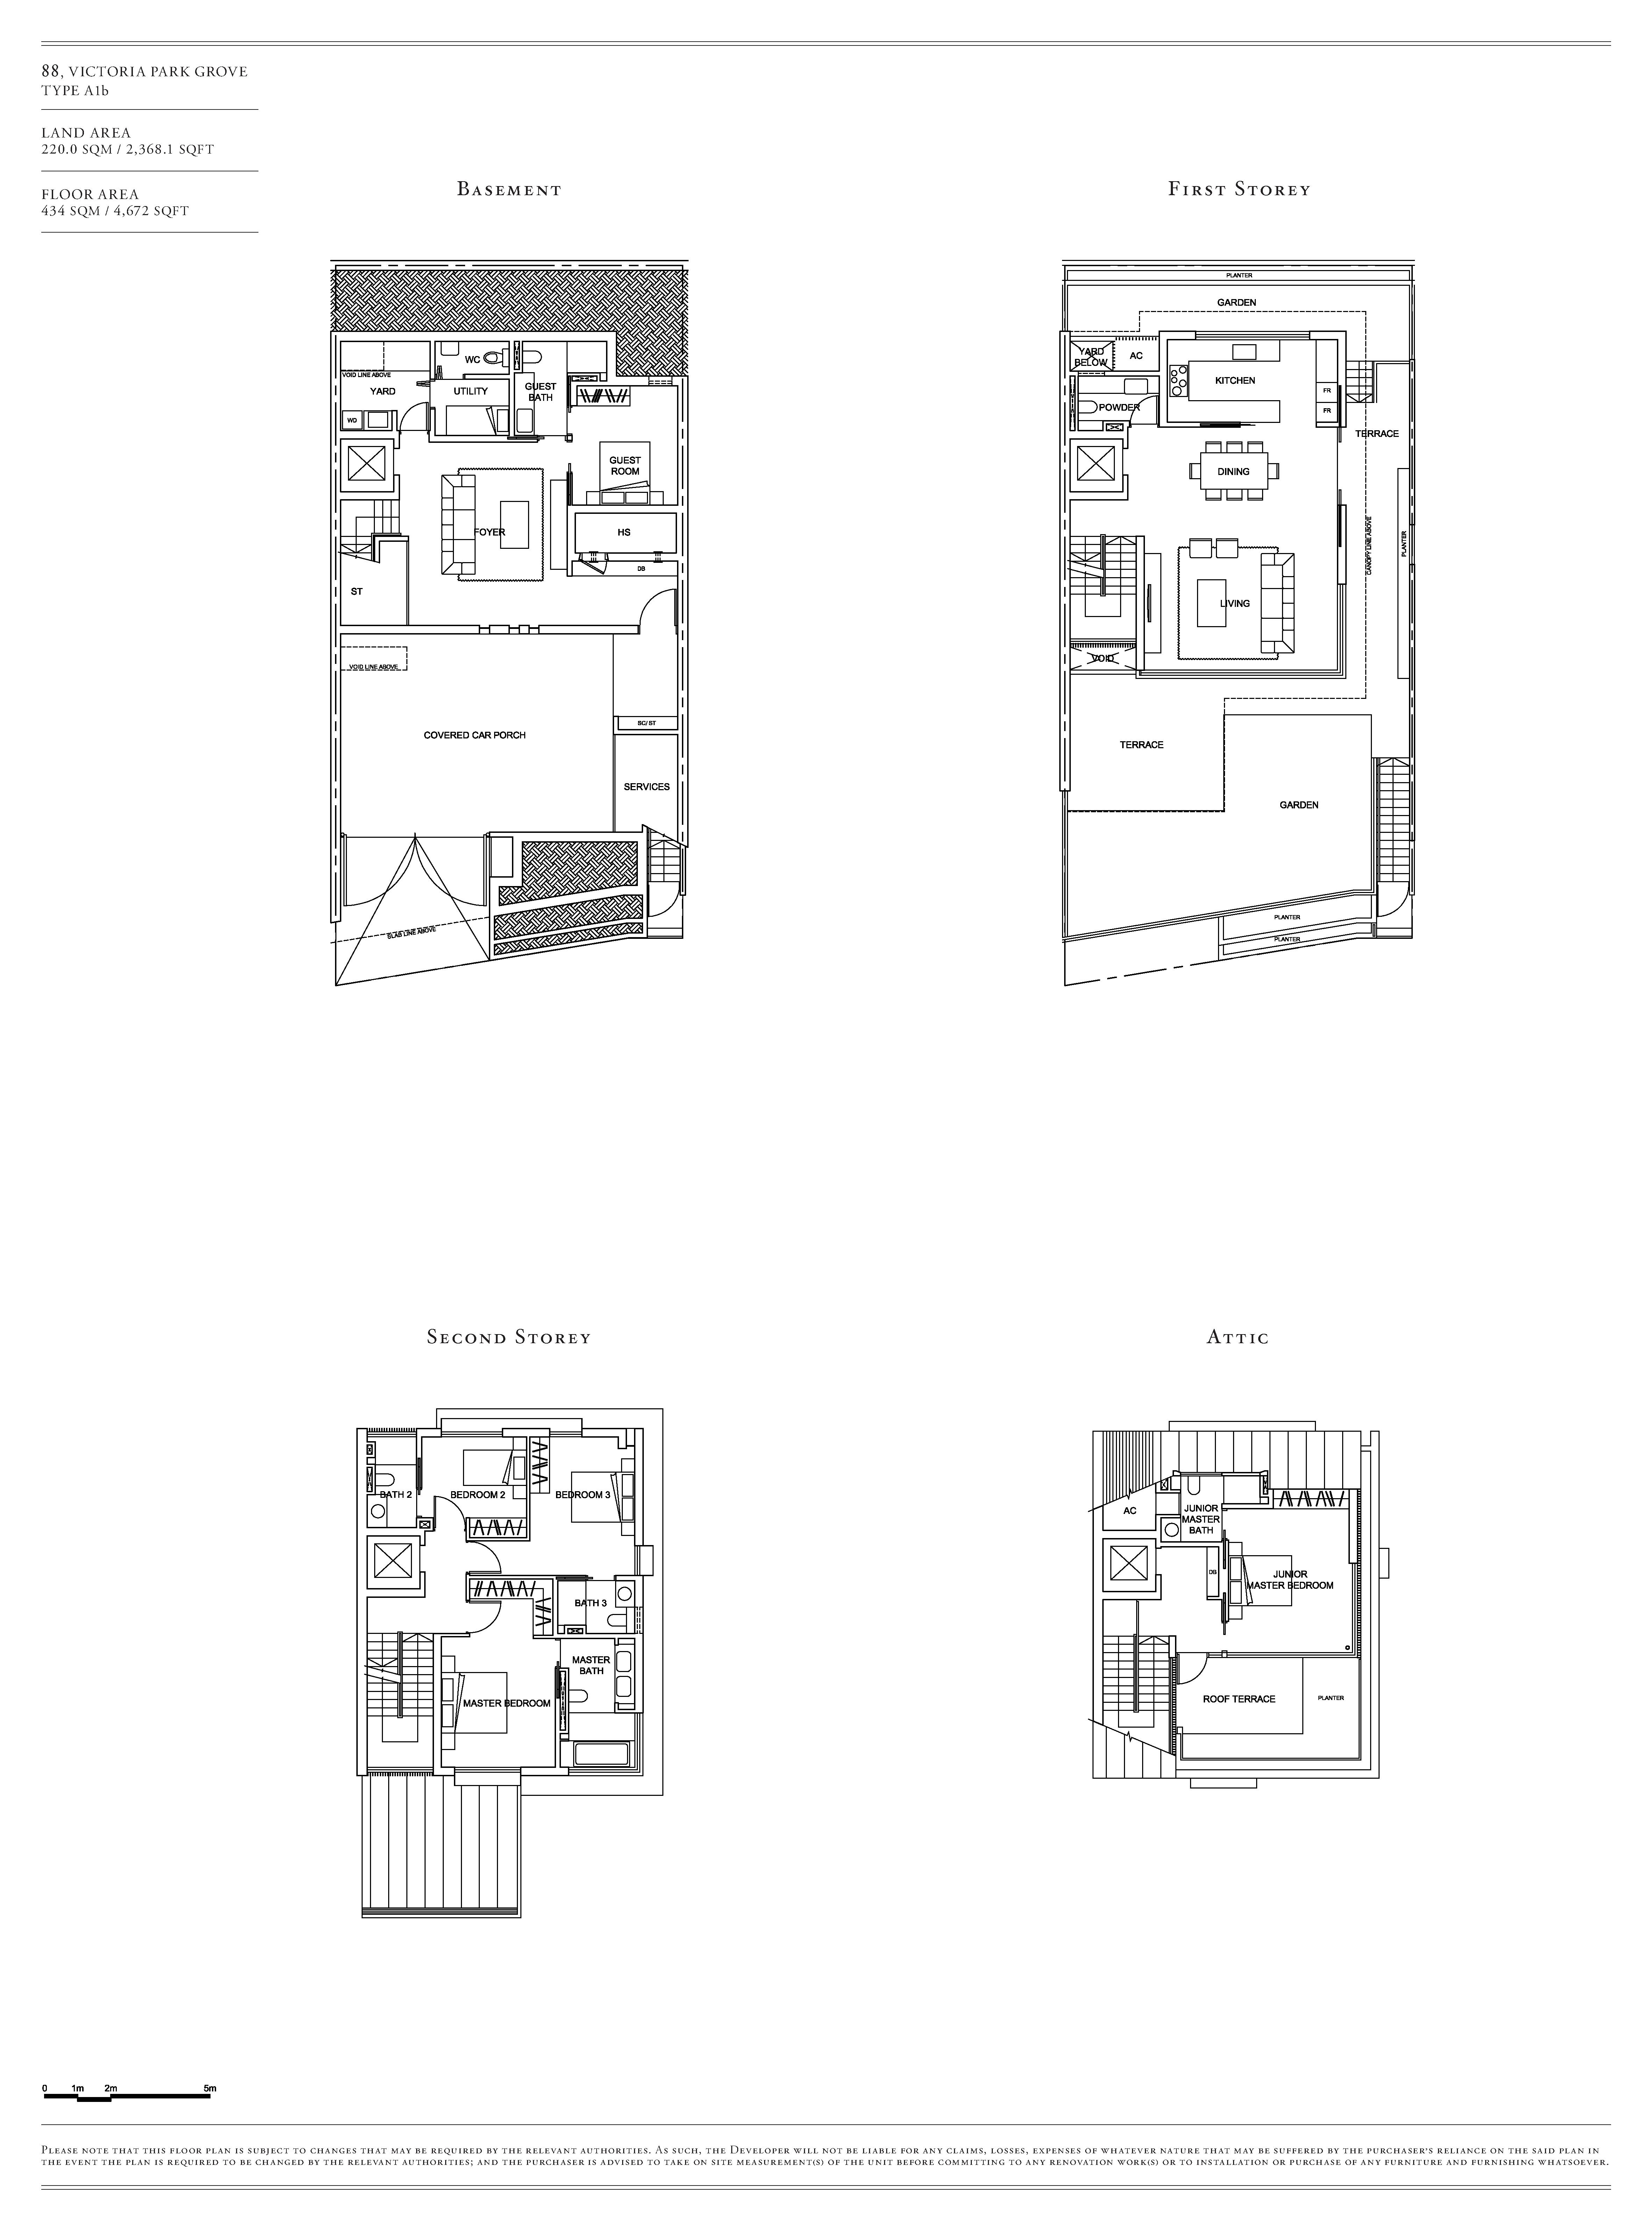 Victoria Park Villas House 88 Type A1b Floor Plans